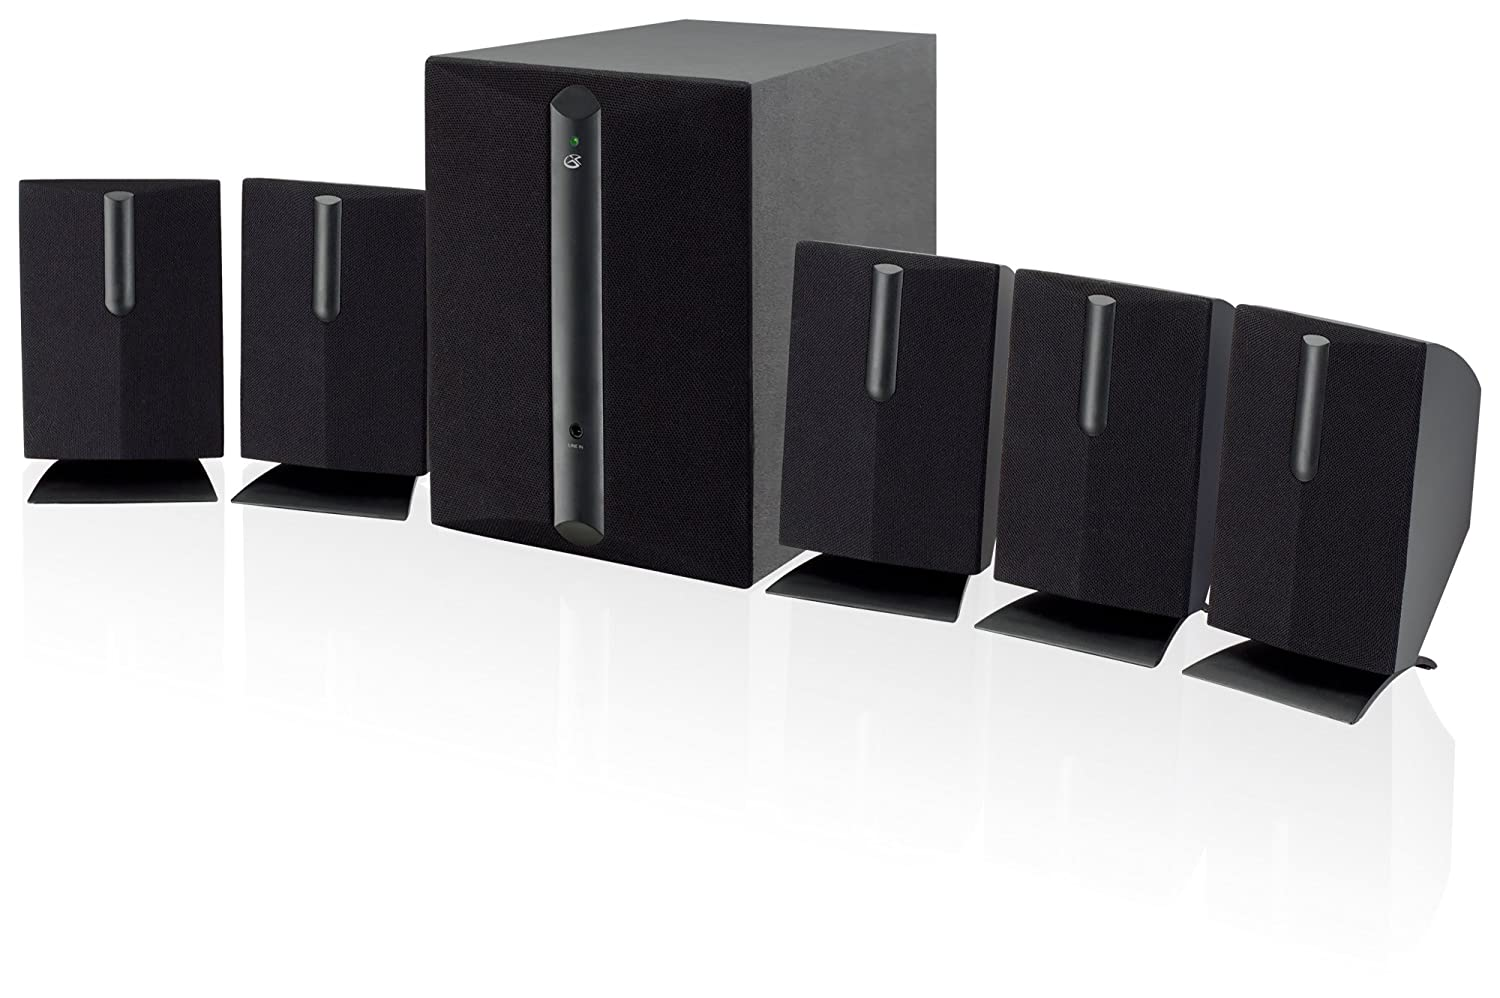 iLive DPI HT050B 5.1 Channel Home Theater Speaker System (6 Speaker, Black) DPI Inc.